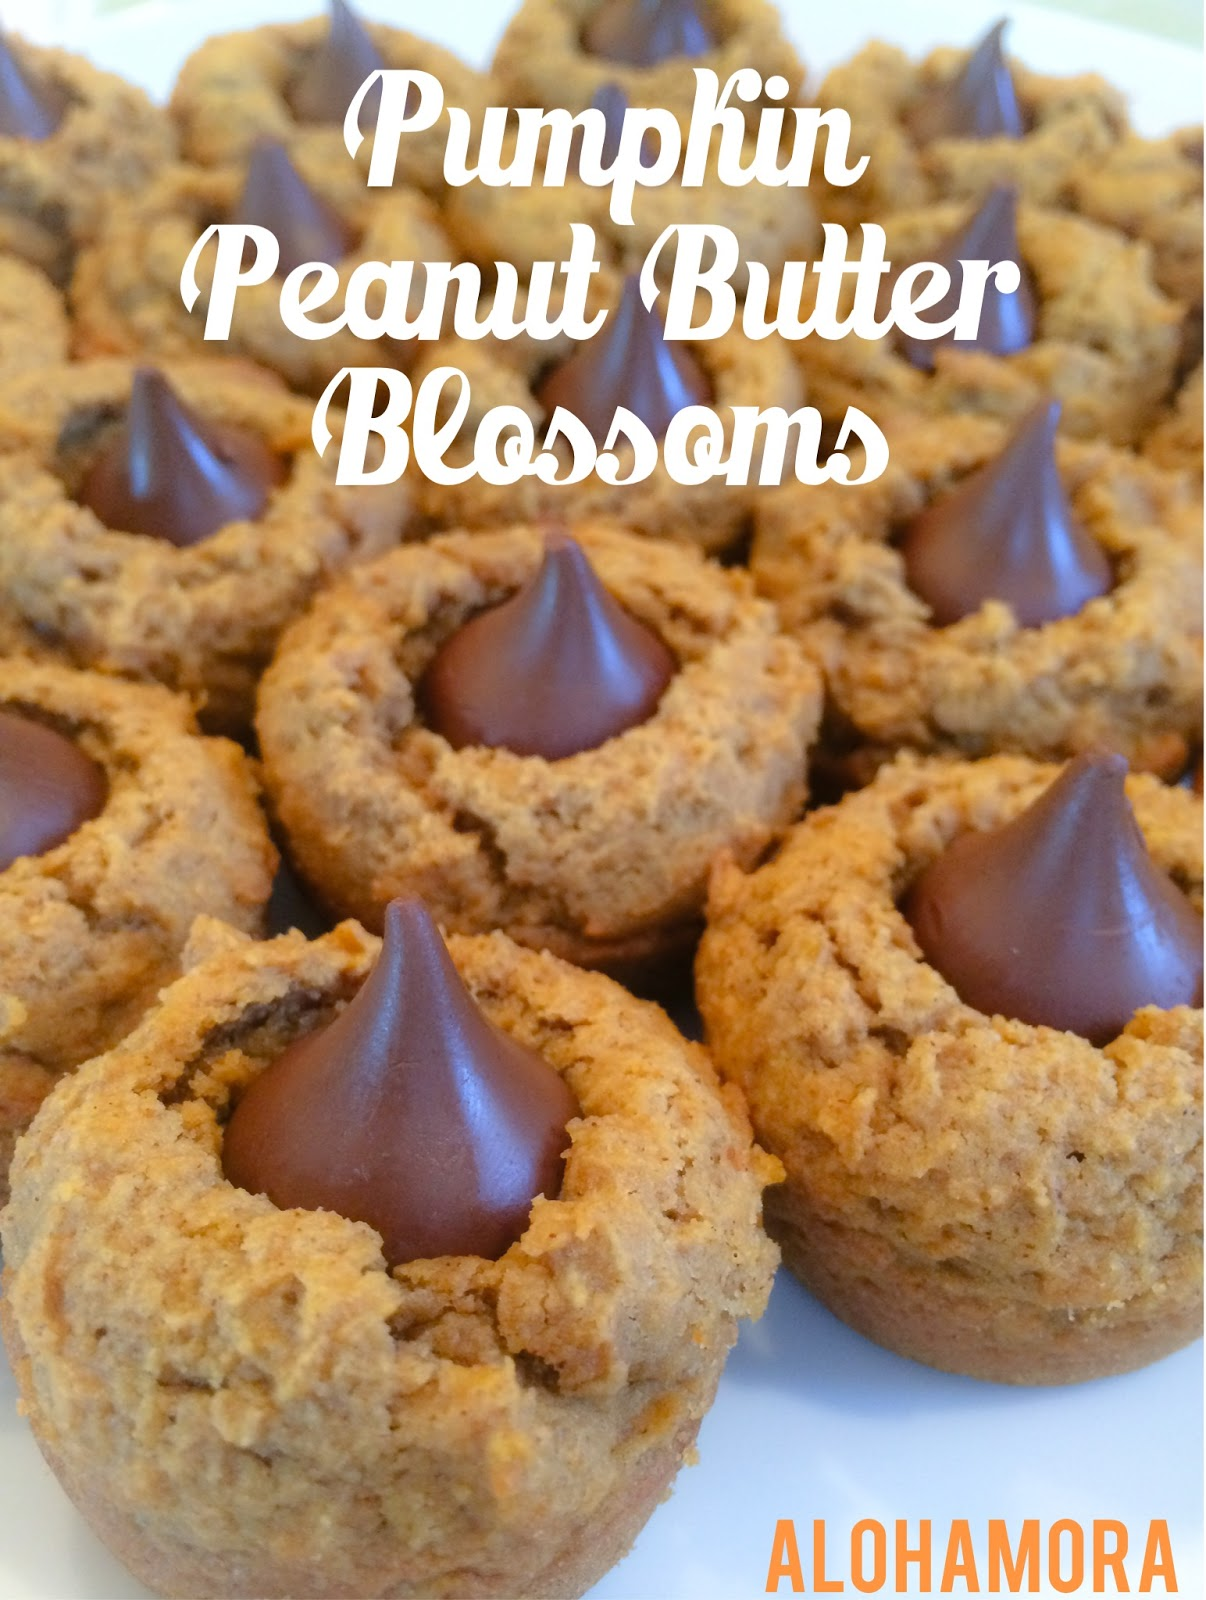 Pumpkin Peanut Butter Blossoms.  Pumpkin and Chocolate tastes good as well as peanut butter and chocolate.  Therefore pumpkin, peanut butter and chocolate is a surprisingly delicious combination.  These cookies or bites are amazing; they stay soft for at least a week. Alohamora Open a Book http://alohamoraopenabook.blogspot.com/